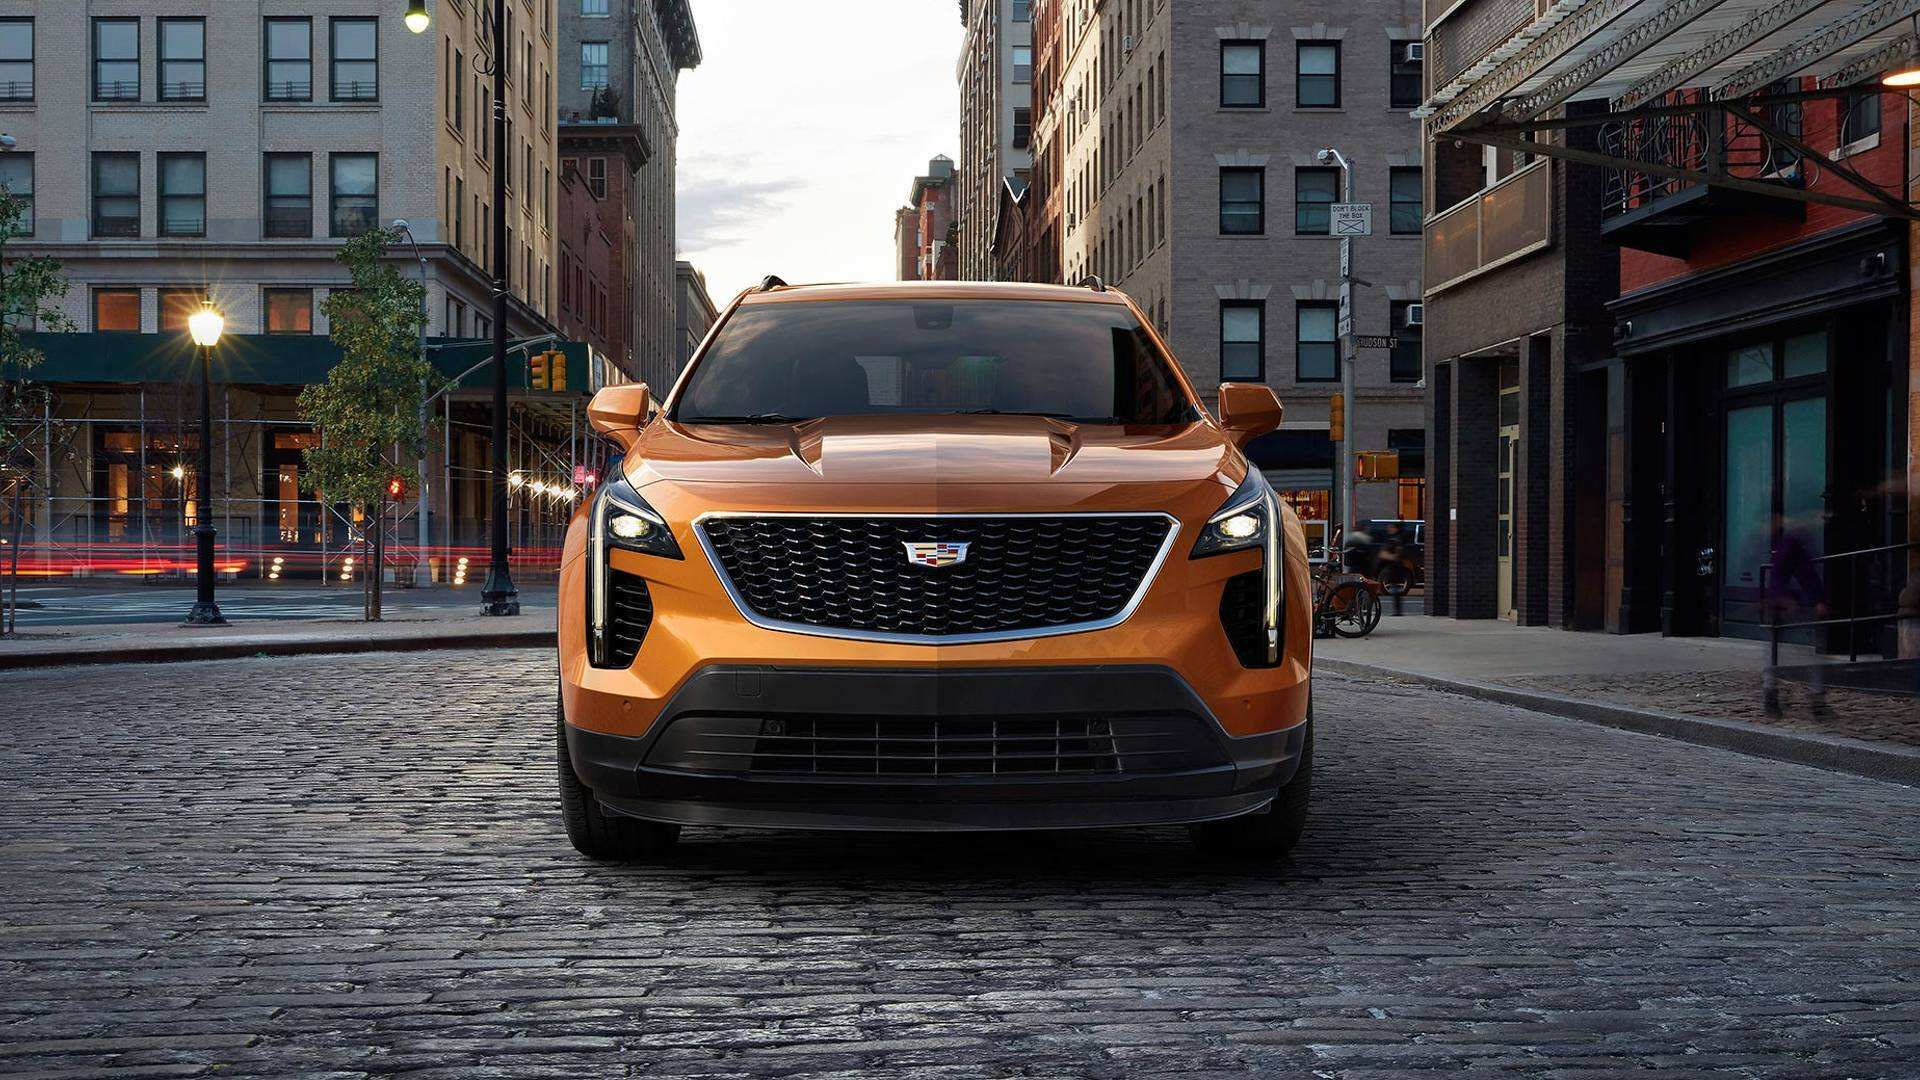 64 All New Cadillac 2019 Xt4 Price New Engine Spesification by Cadillac 2019 Xt4 Price New Engine